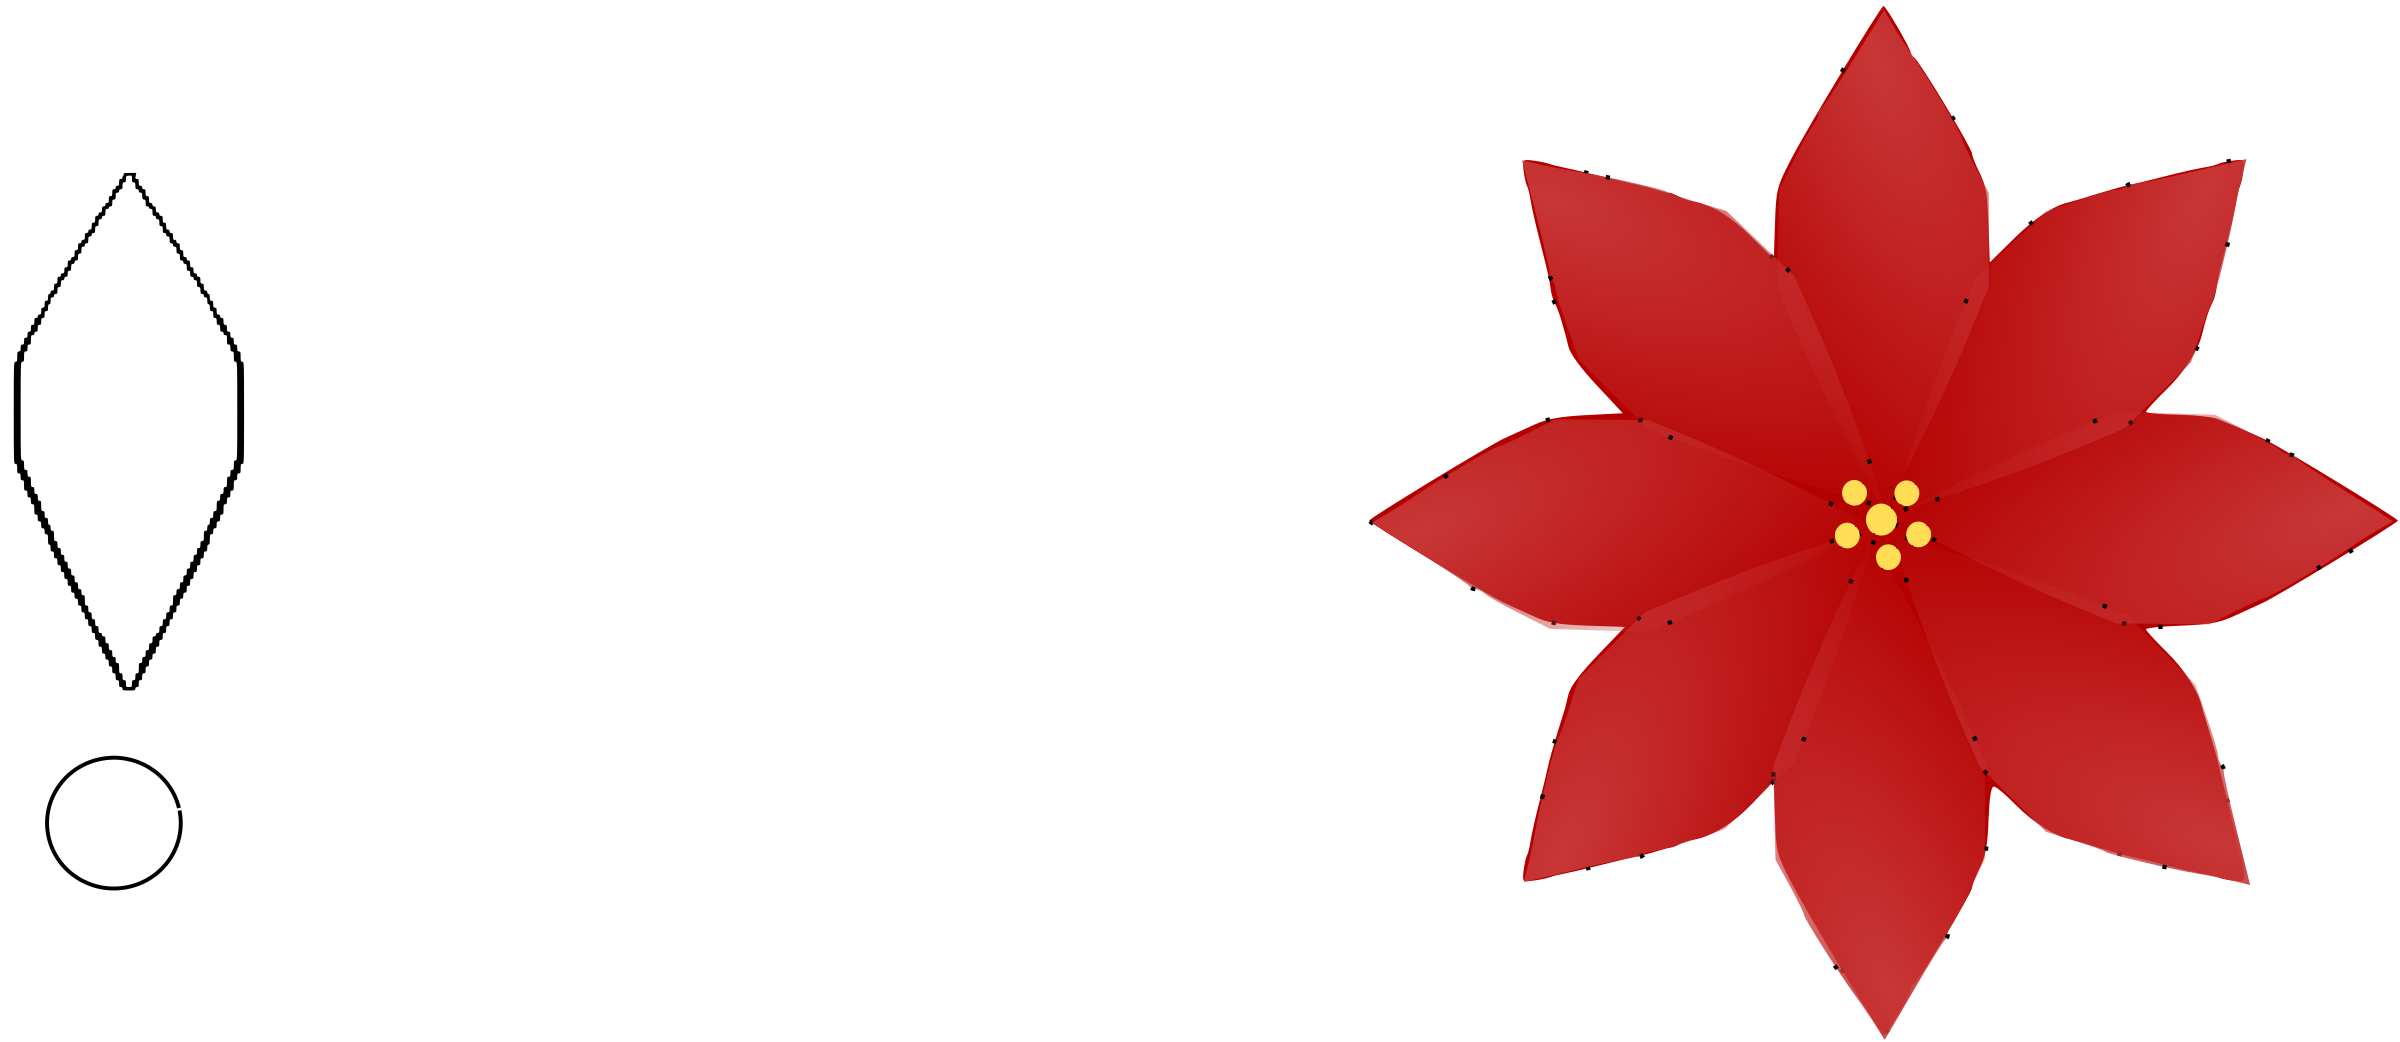 Flower Poinsettia 8 leaf Template